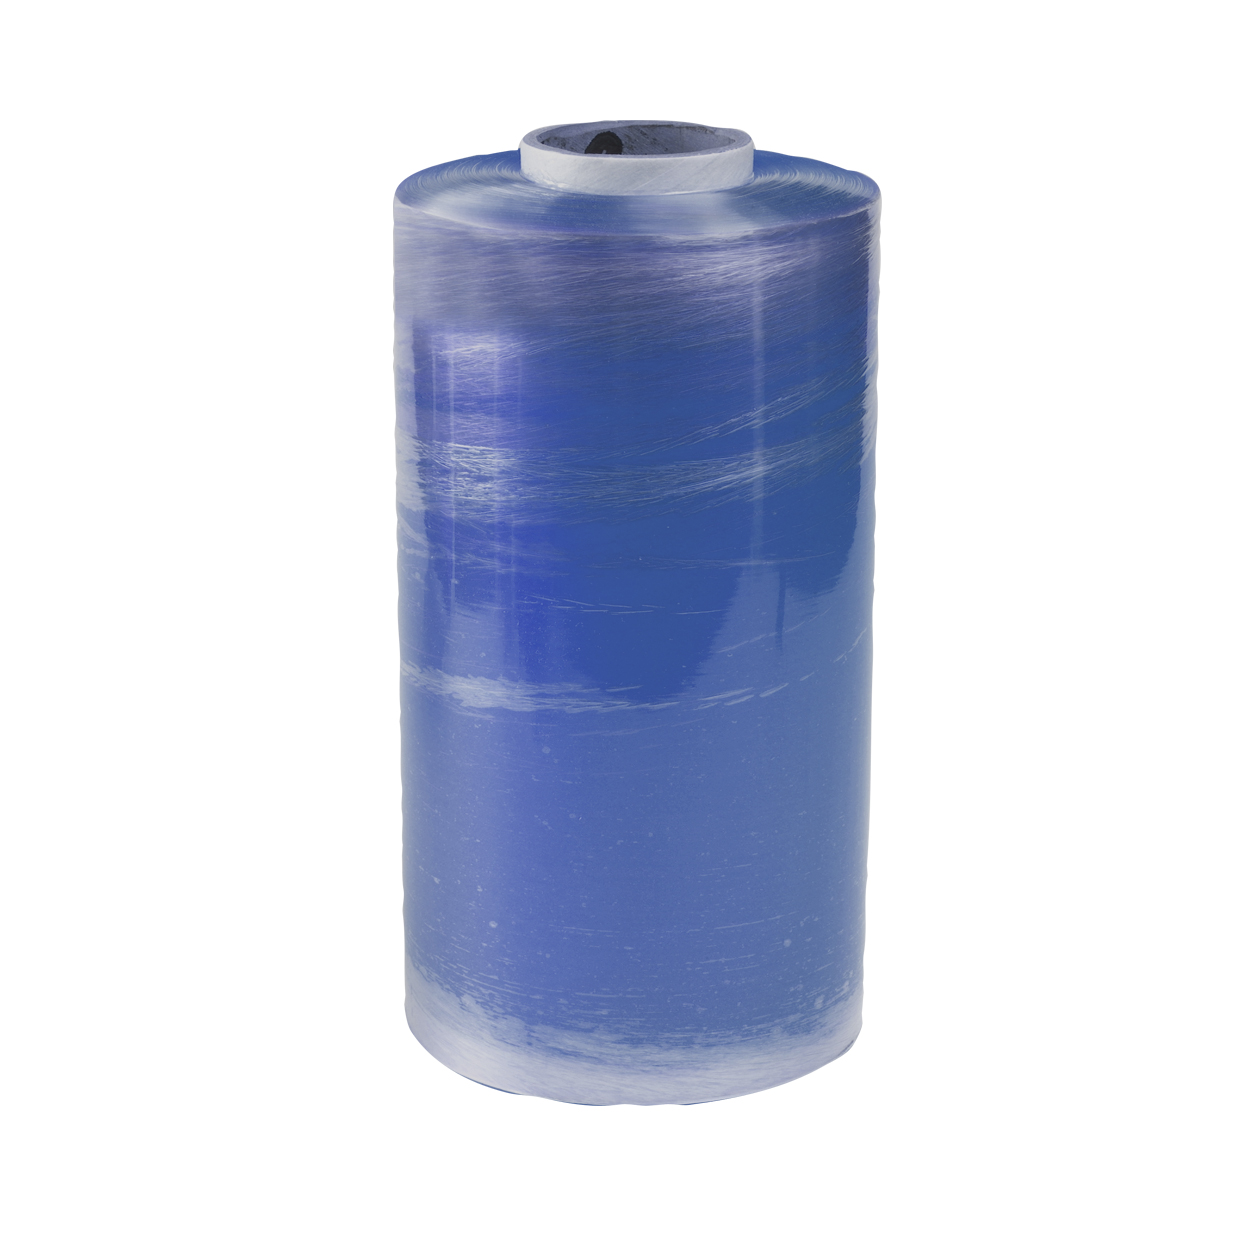 Miler 174 Cling Film Roll 24 Quot X 5280 Anchor Packaging